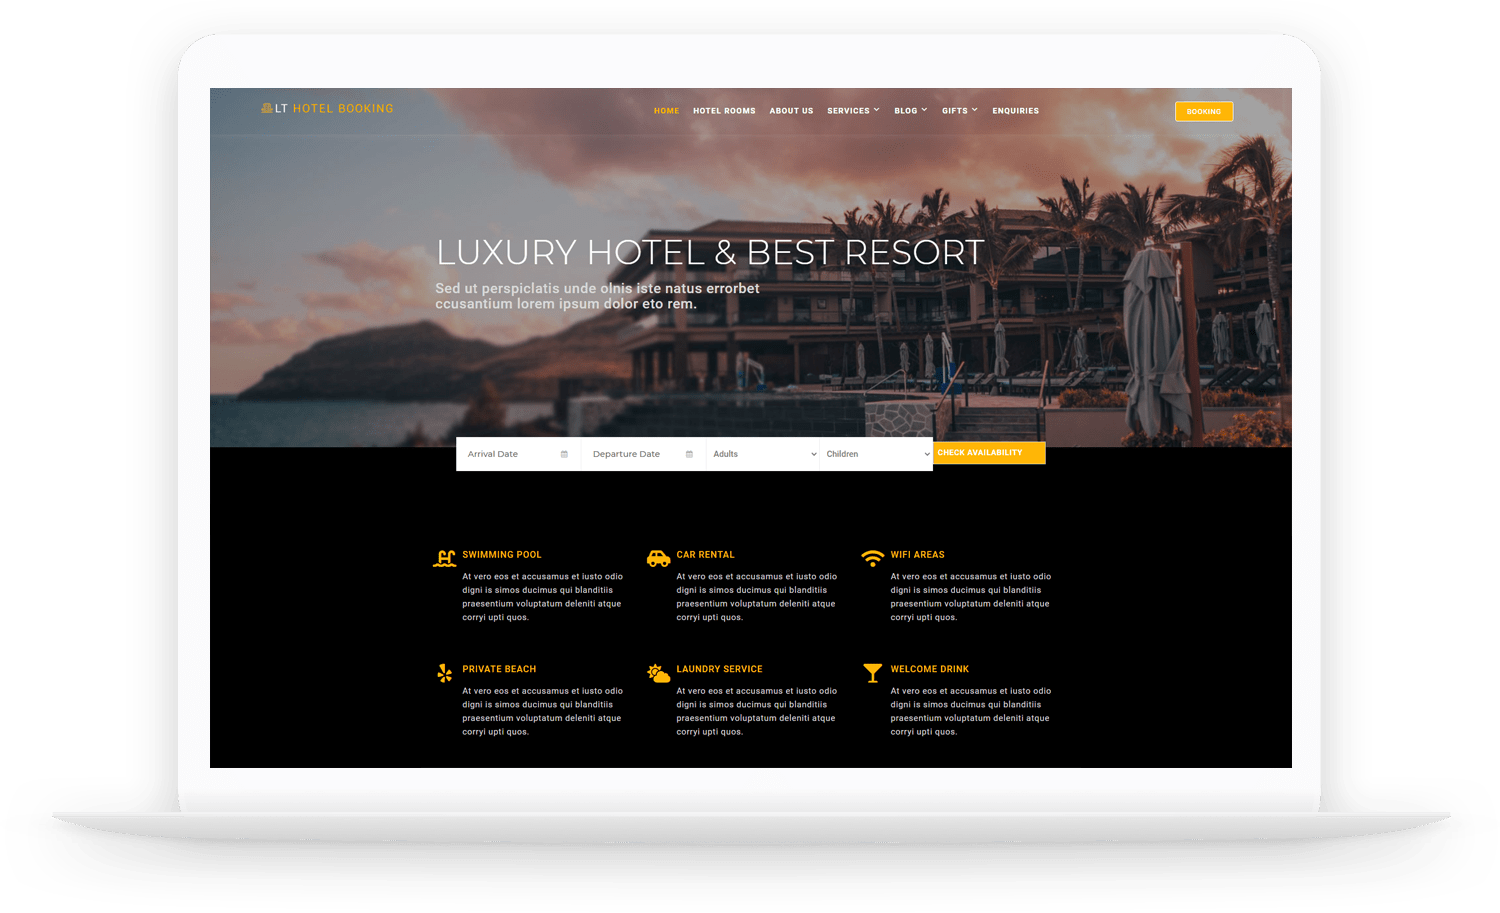 LT-Hotel-Booking-wordpress-theme